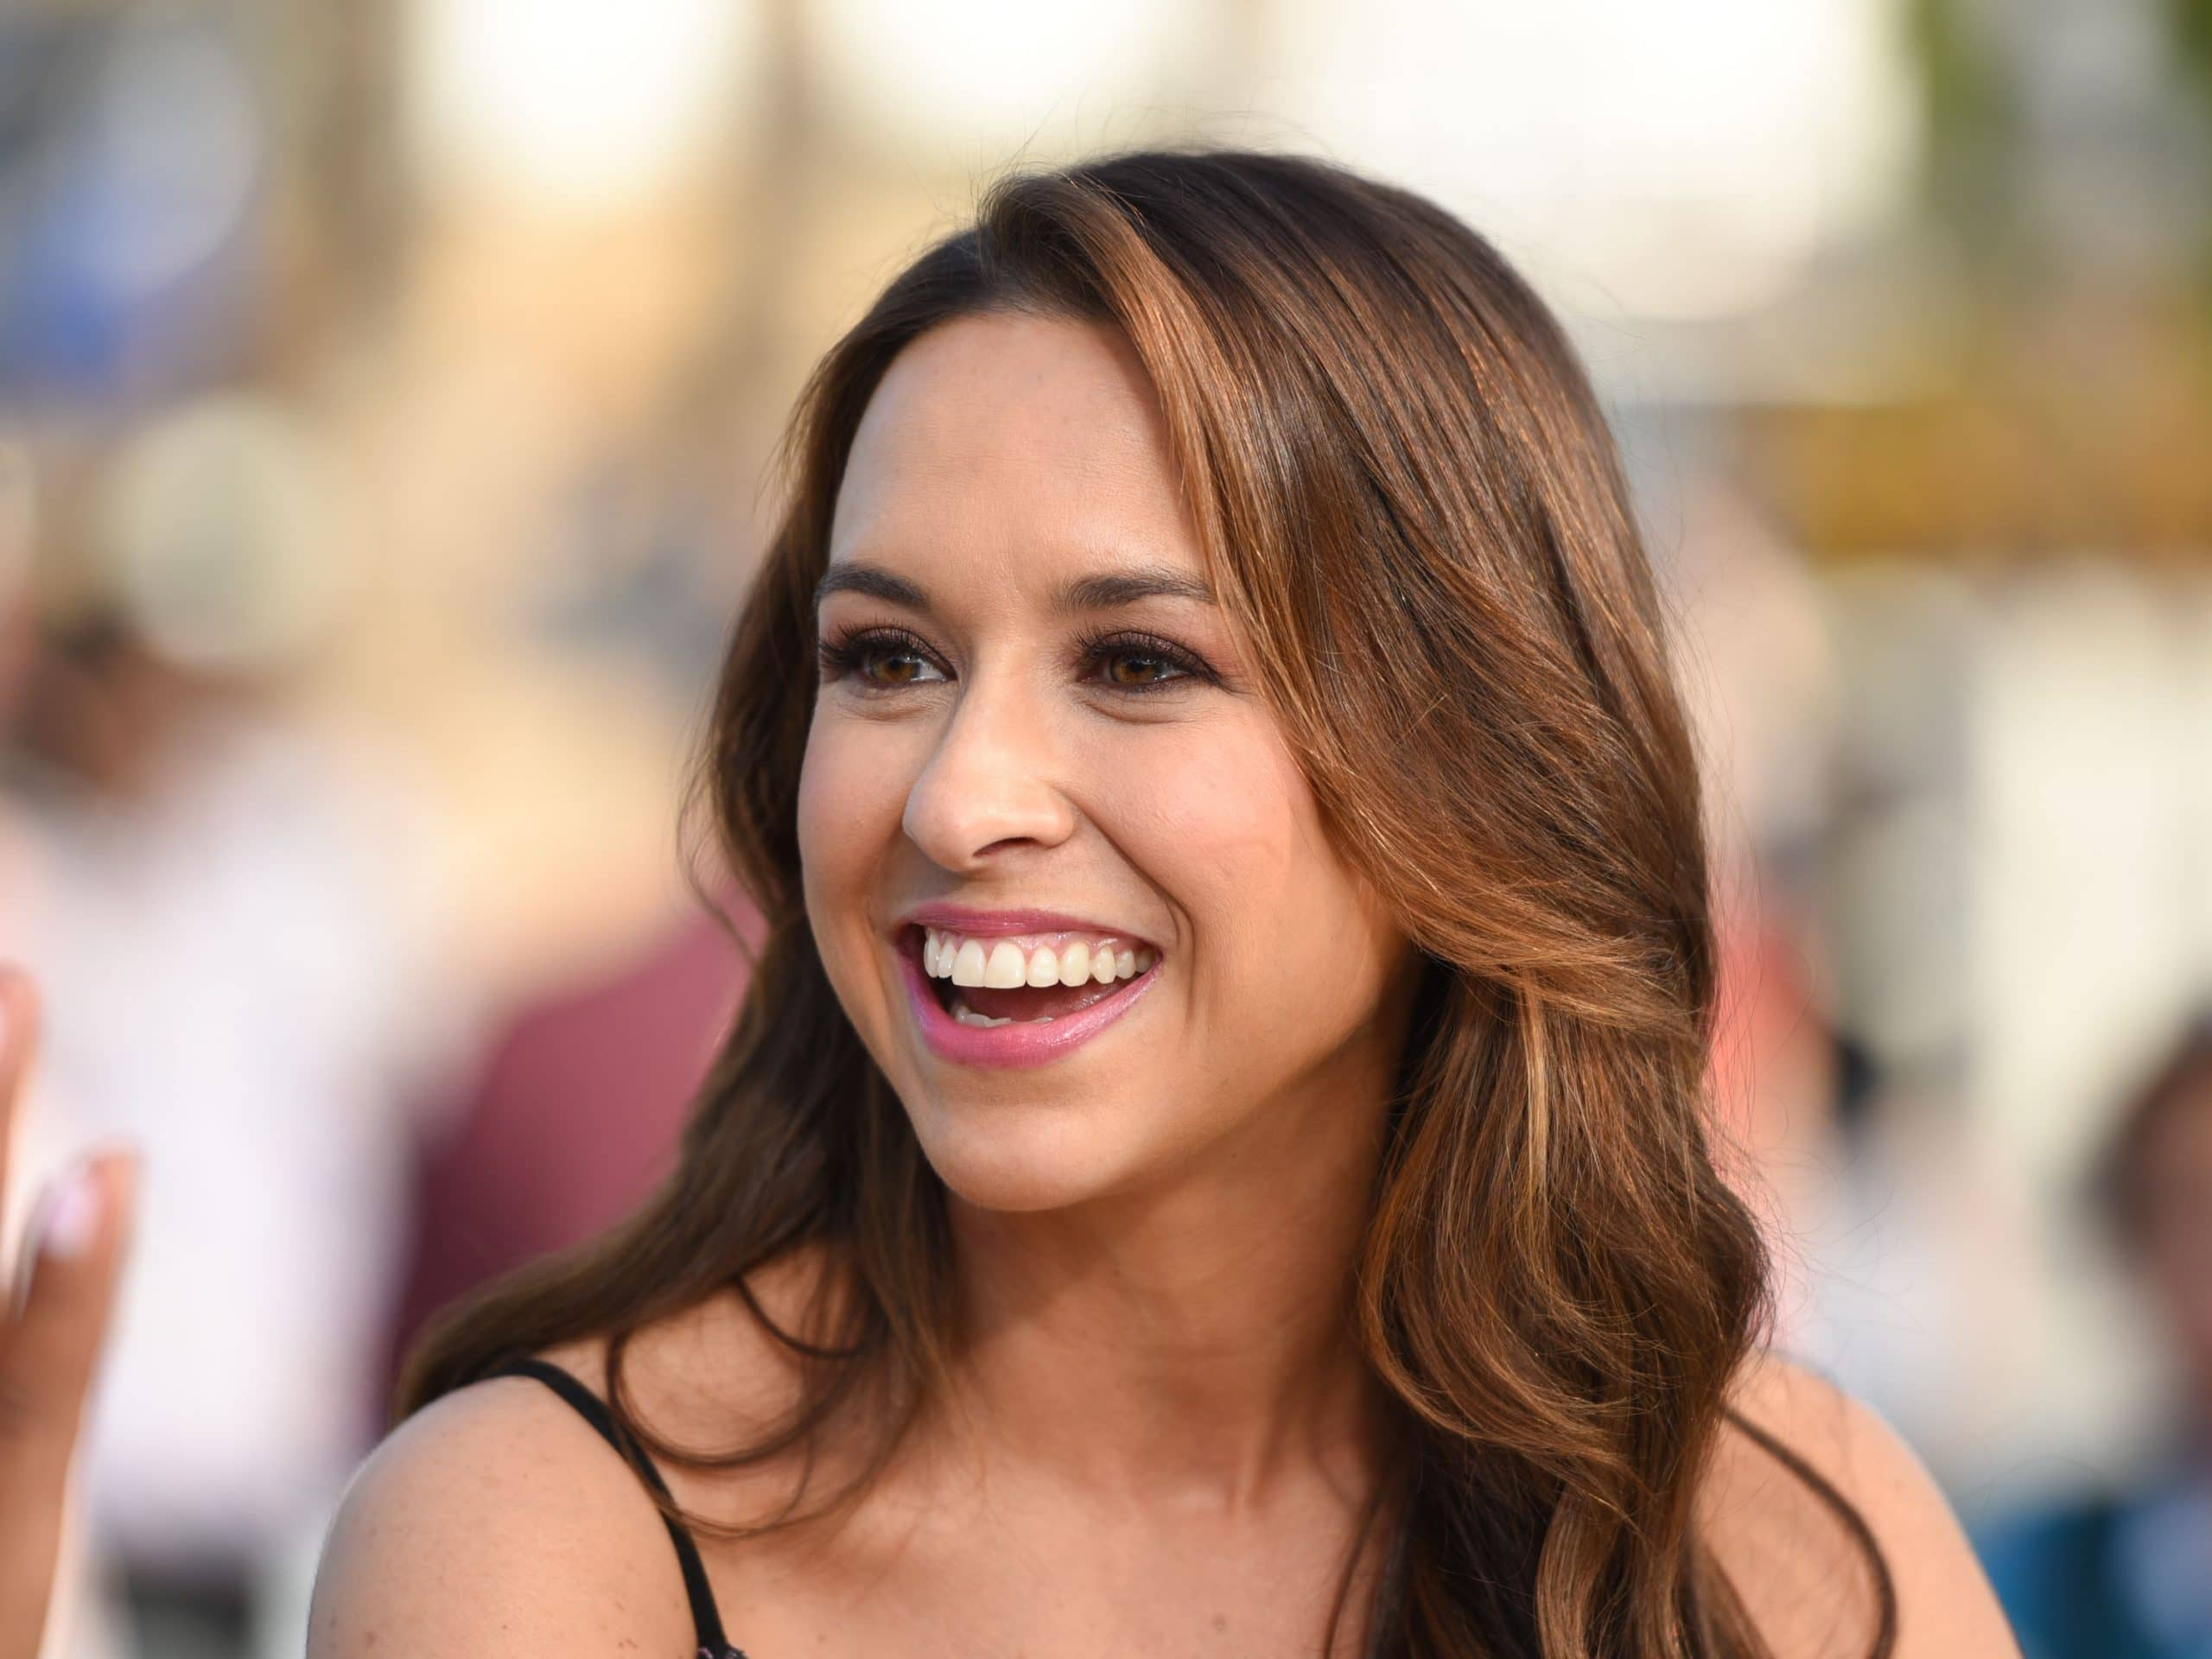 Lacey Chabert American Actress, Voice actress and Singer